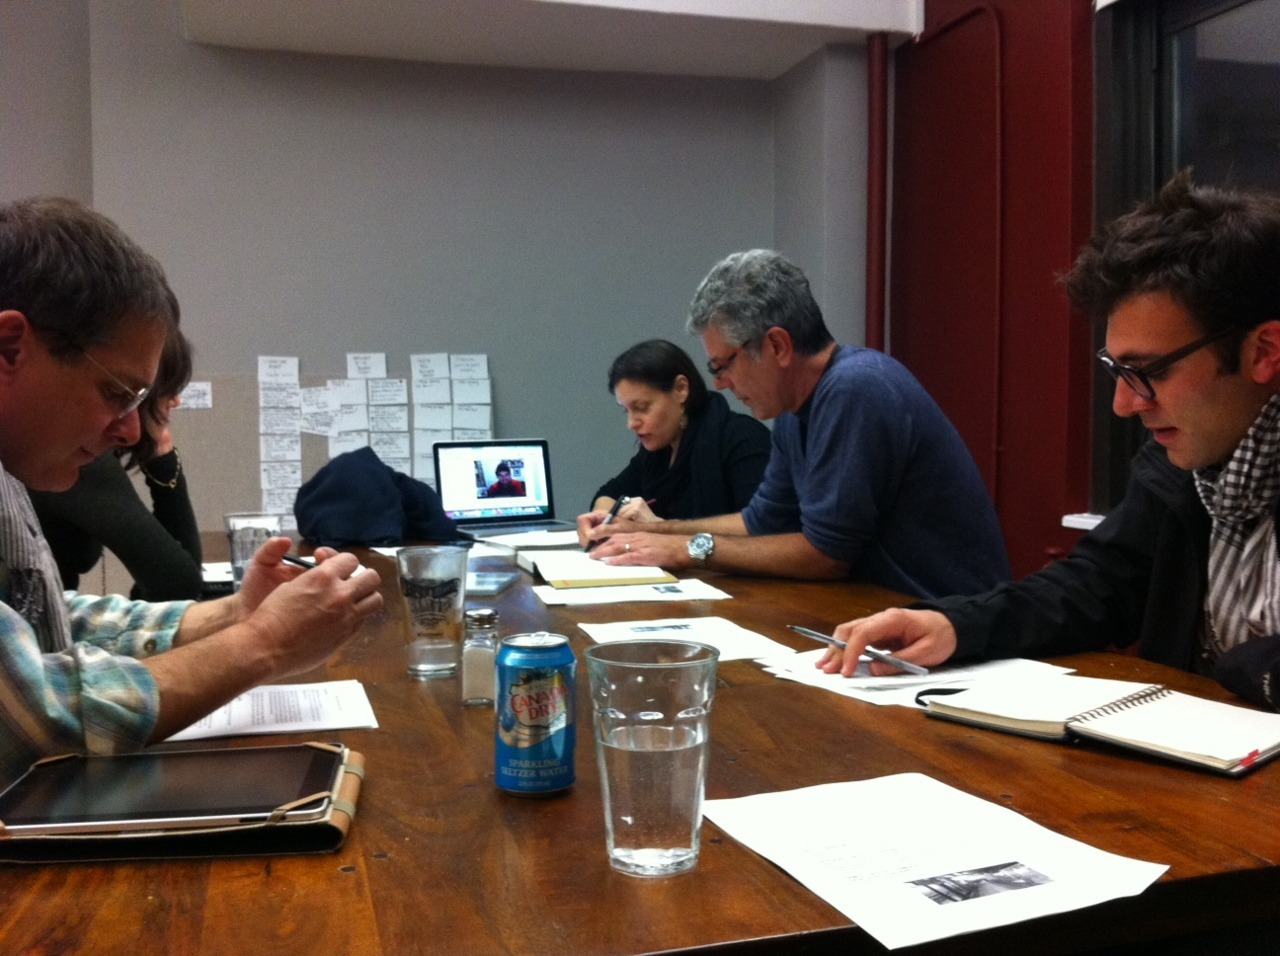 @IntoNoRes:ABNR Japan production meeting @ ZPZ HQ http://yfrog.com/h32pru